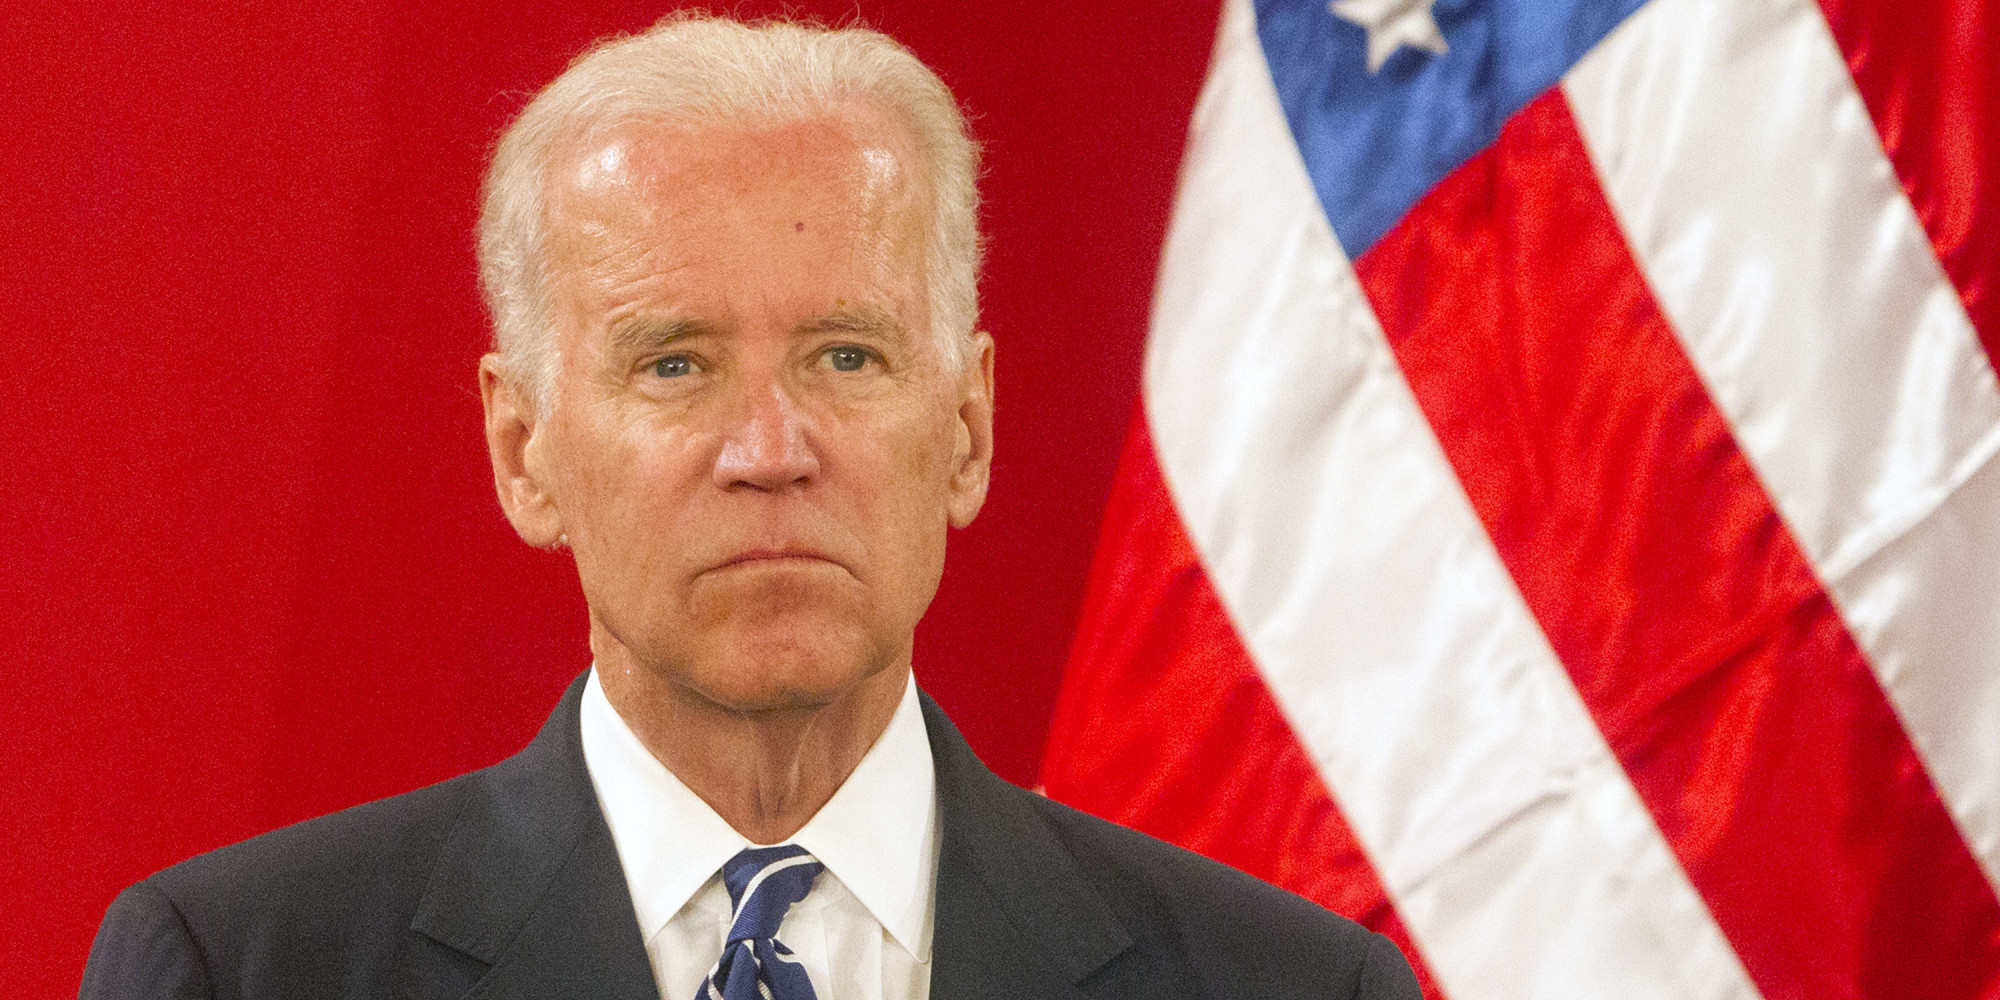 Joe Biden Used to Swim Naked in Front of Embarrassed